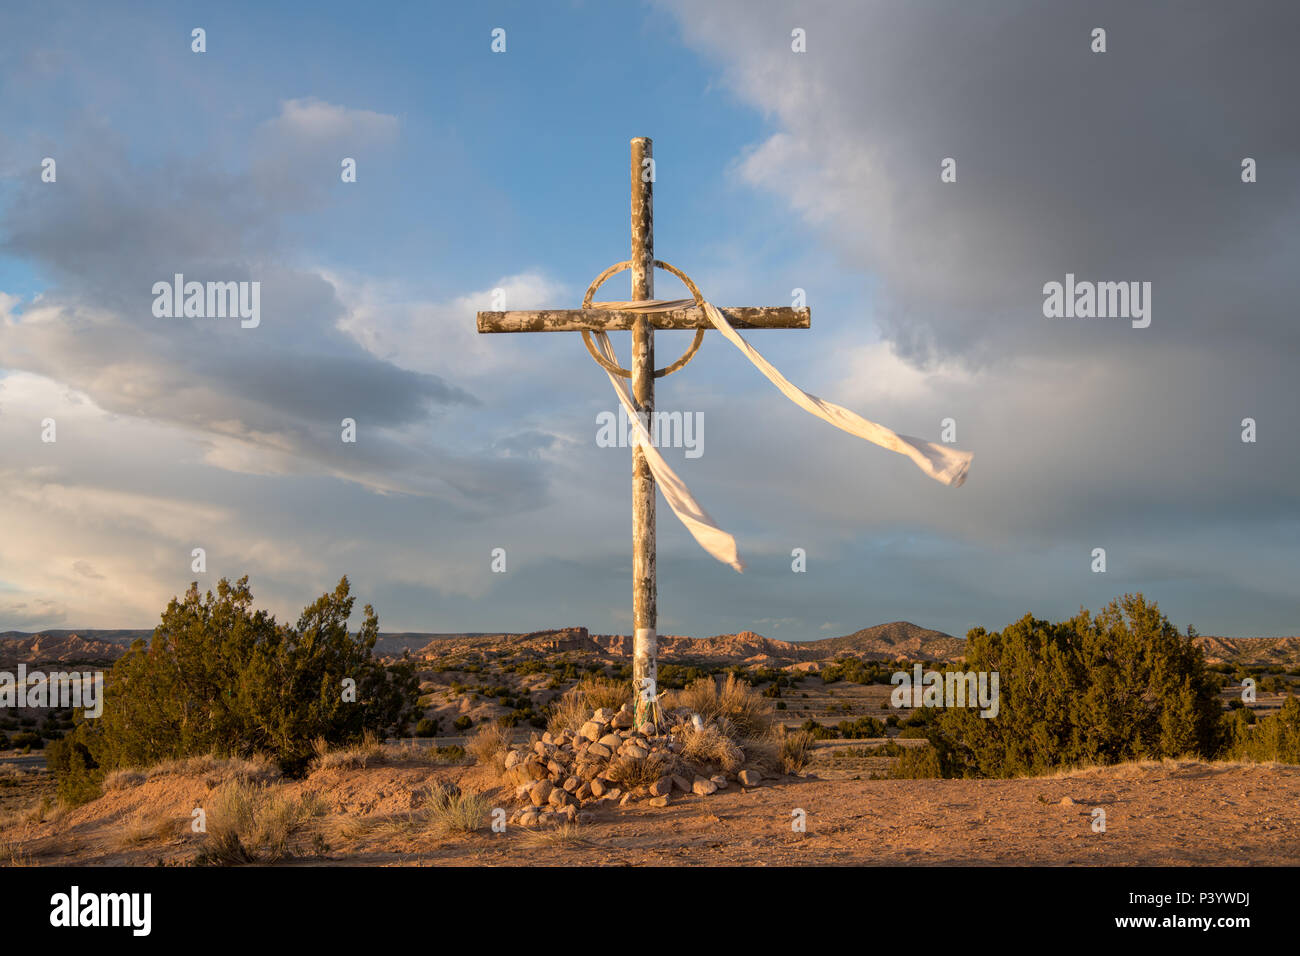 Cross under dramatic sky and clouds in the high desert landscape on the pilgrimage route from Santa Fe, New Mexico to the Sanctuario de Chimayo - Stock Image